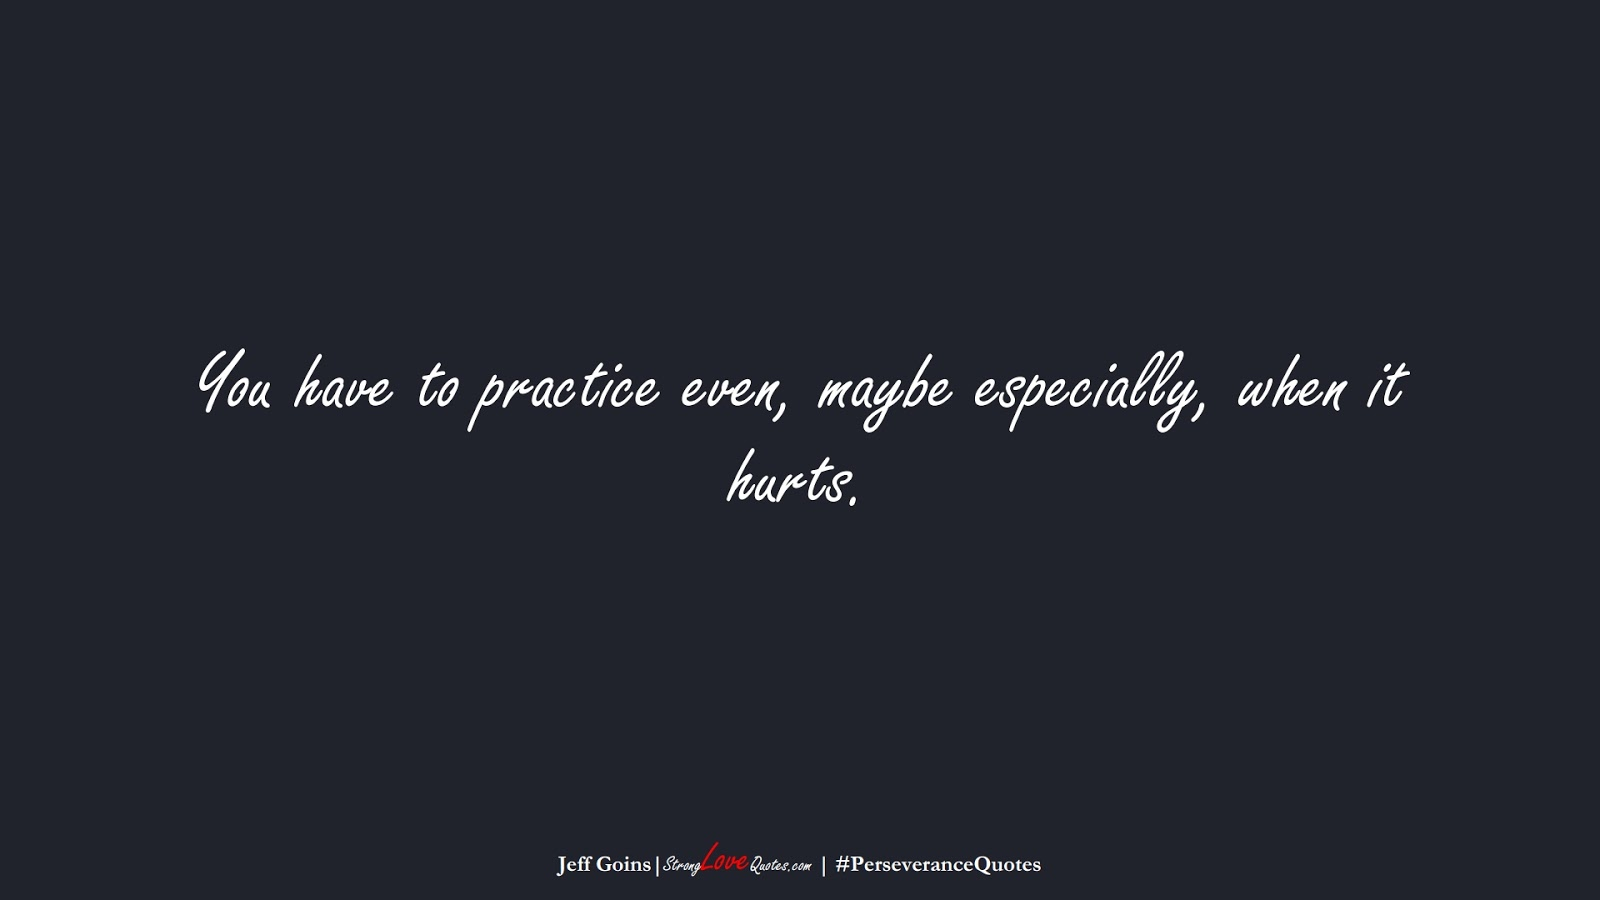 You have to practice even, maybe especially, when it hurts. (Jeff Goins);  #PerseveranceQuotes